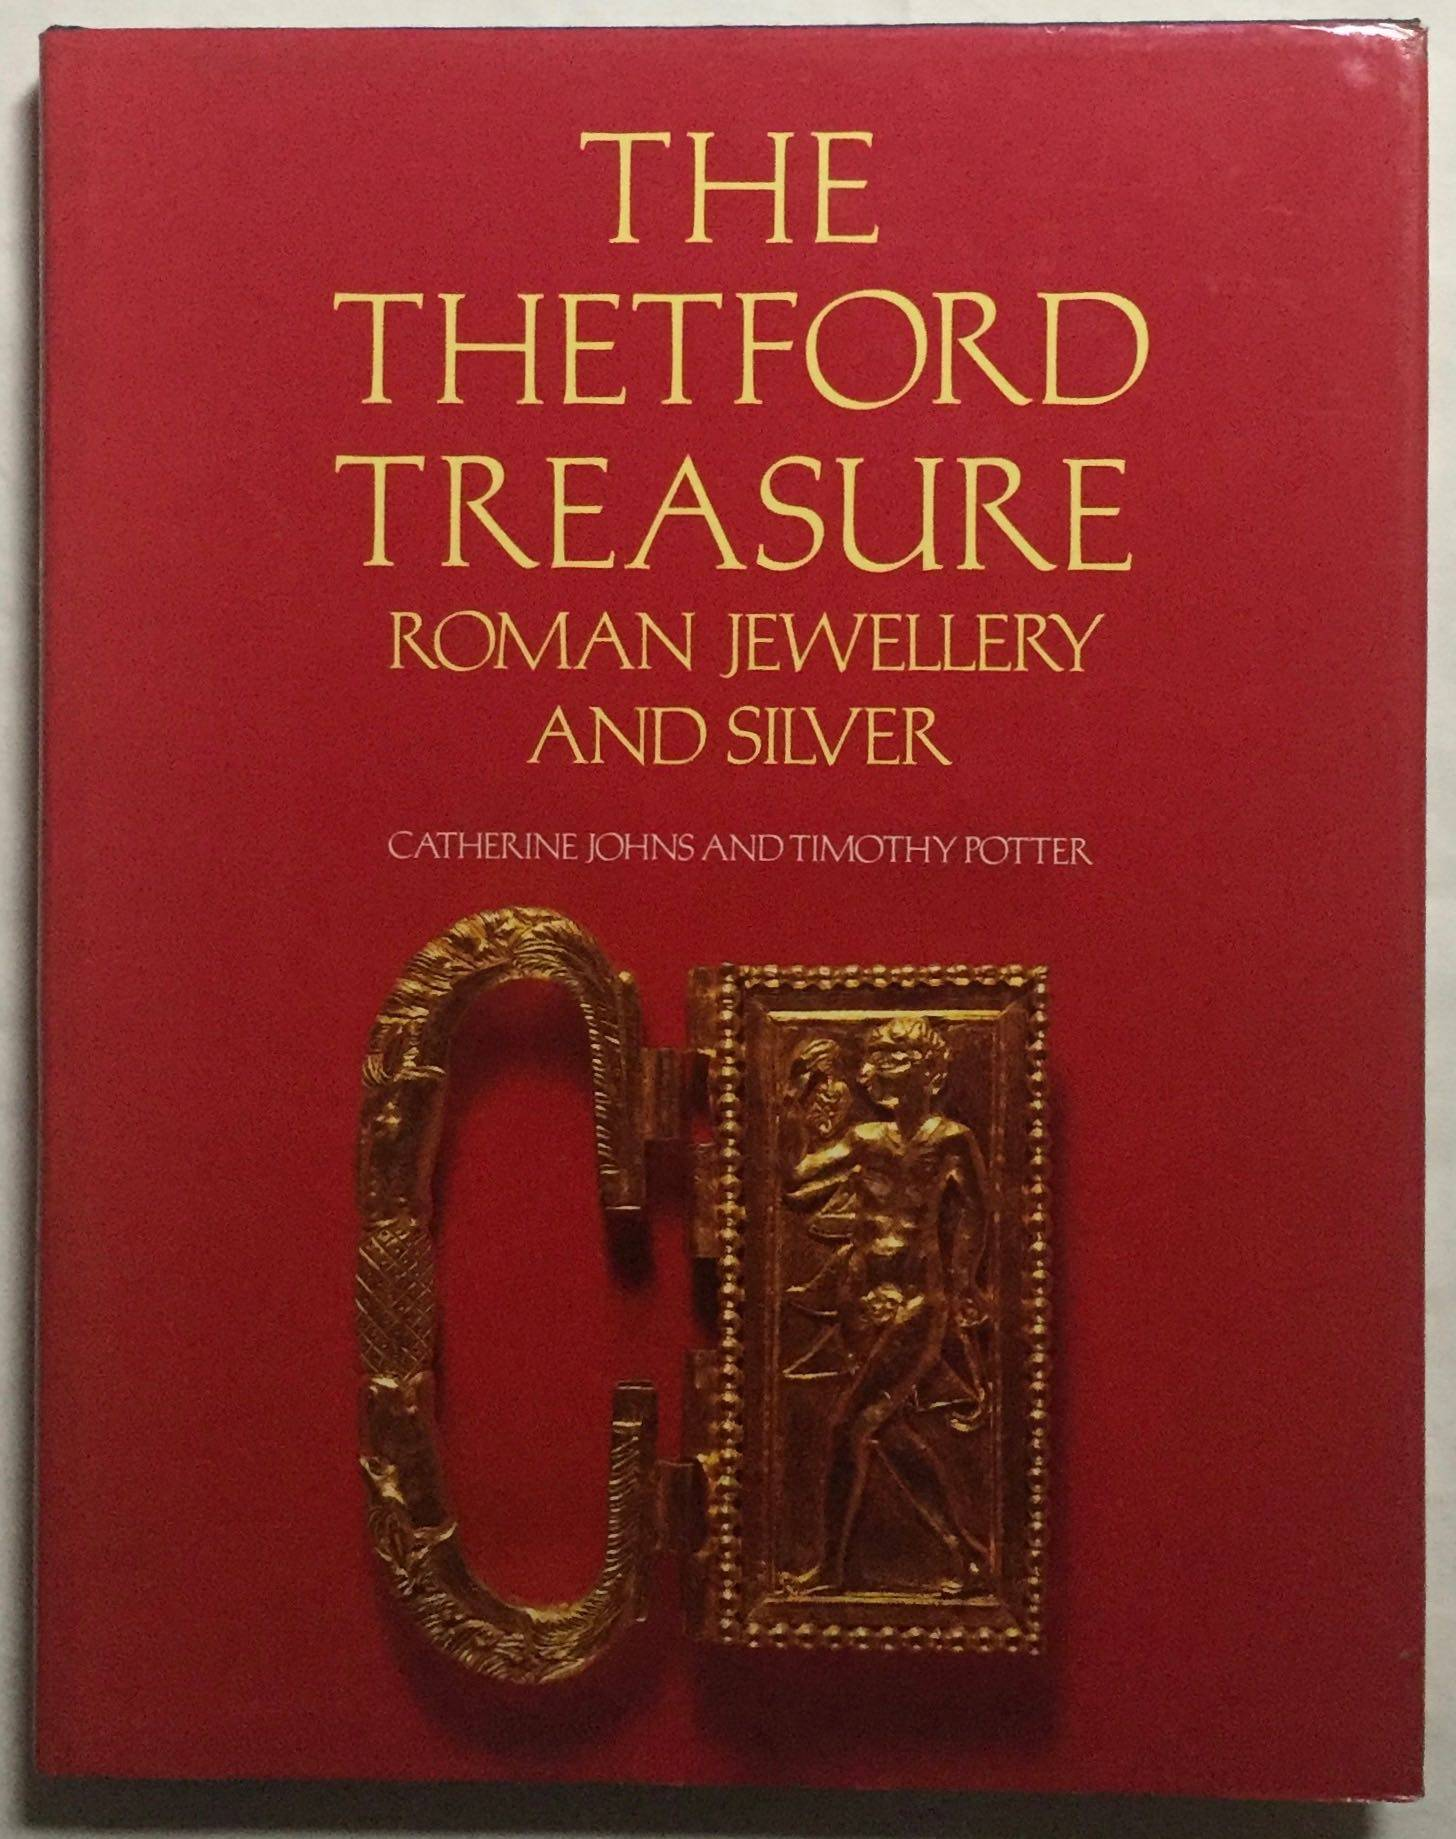 The Thetford treasure. Roman Jewellery and silver. JOHNS Catherine - POTTER Timothy [Fine] [Hardcover]